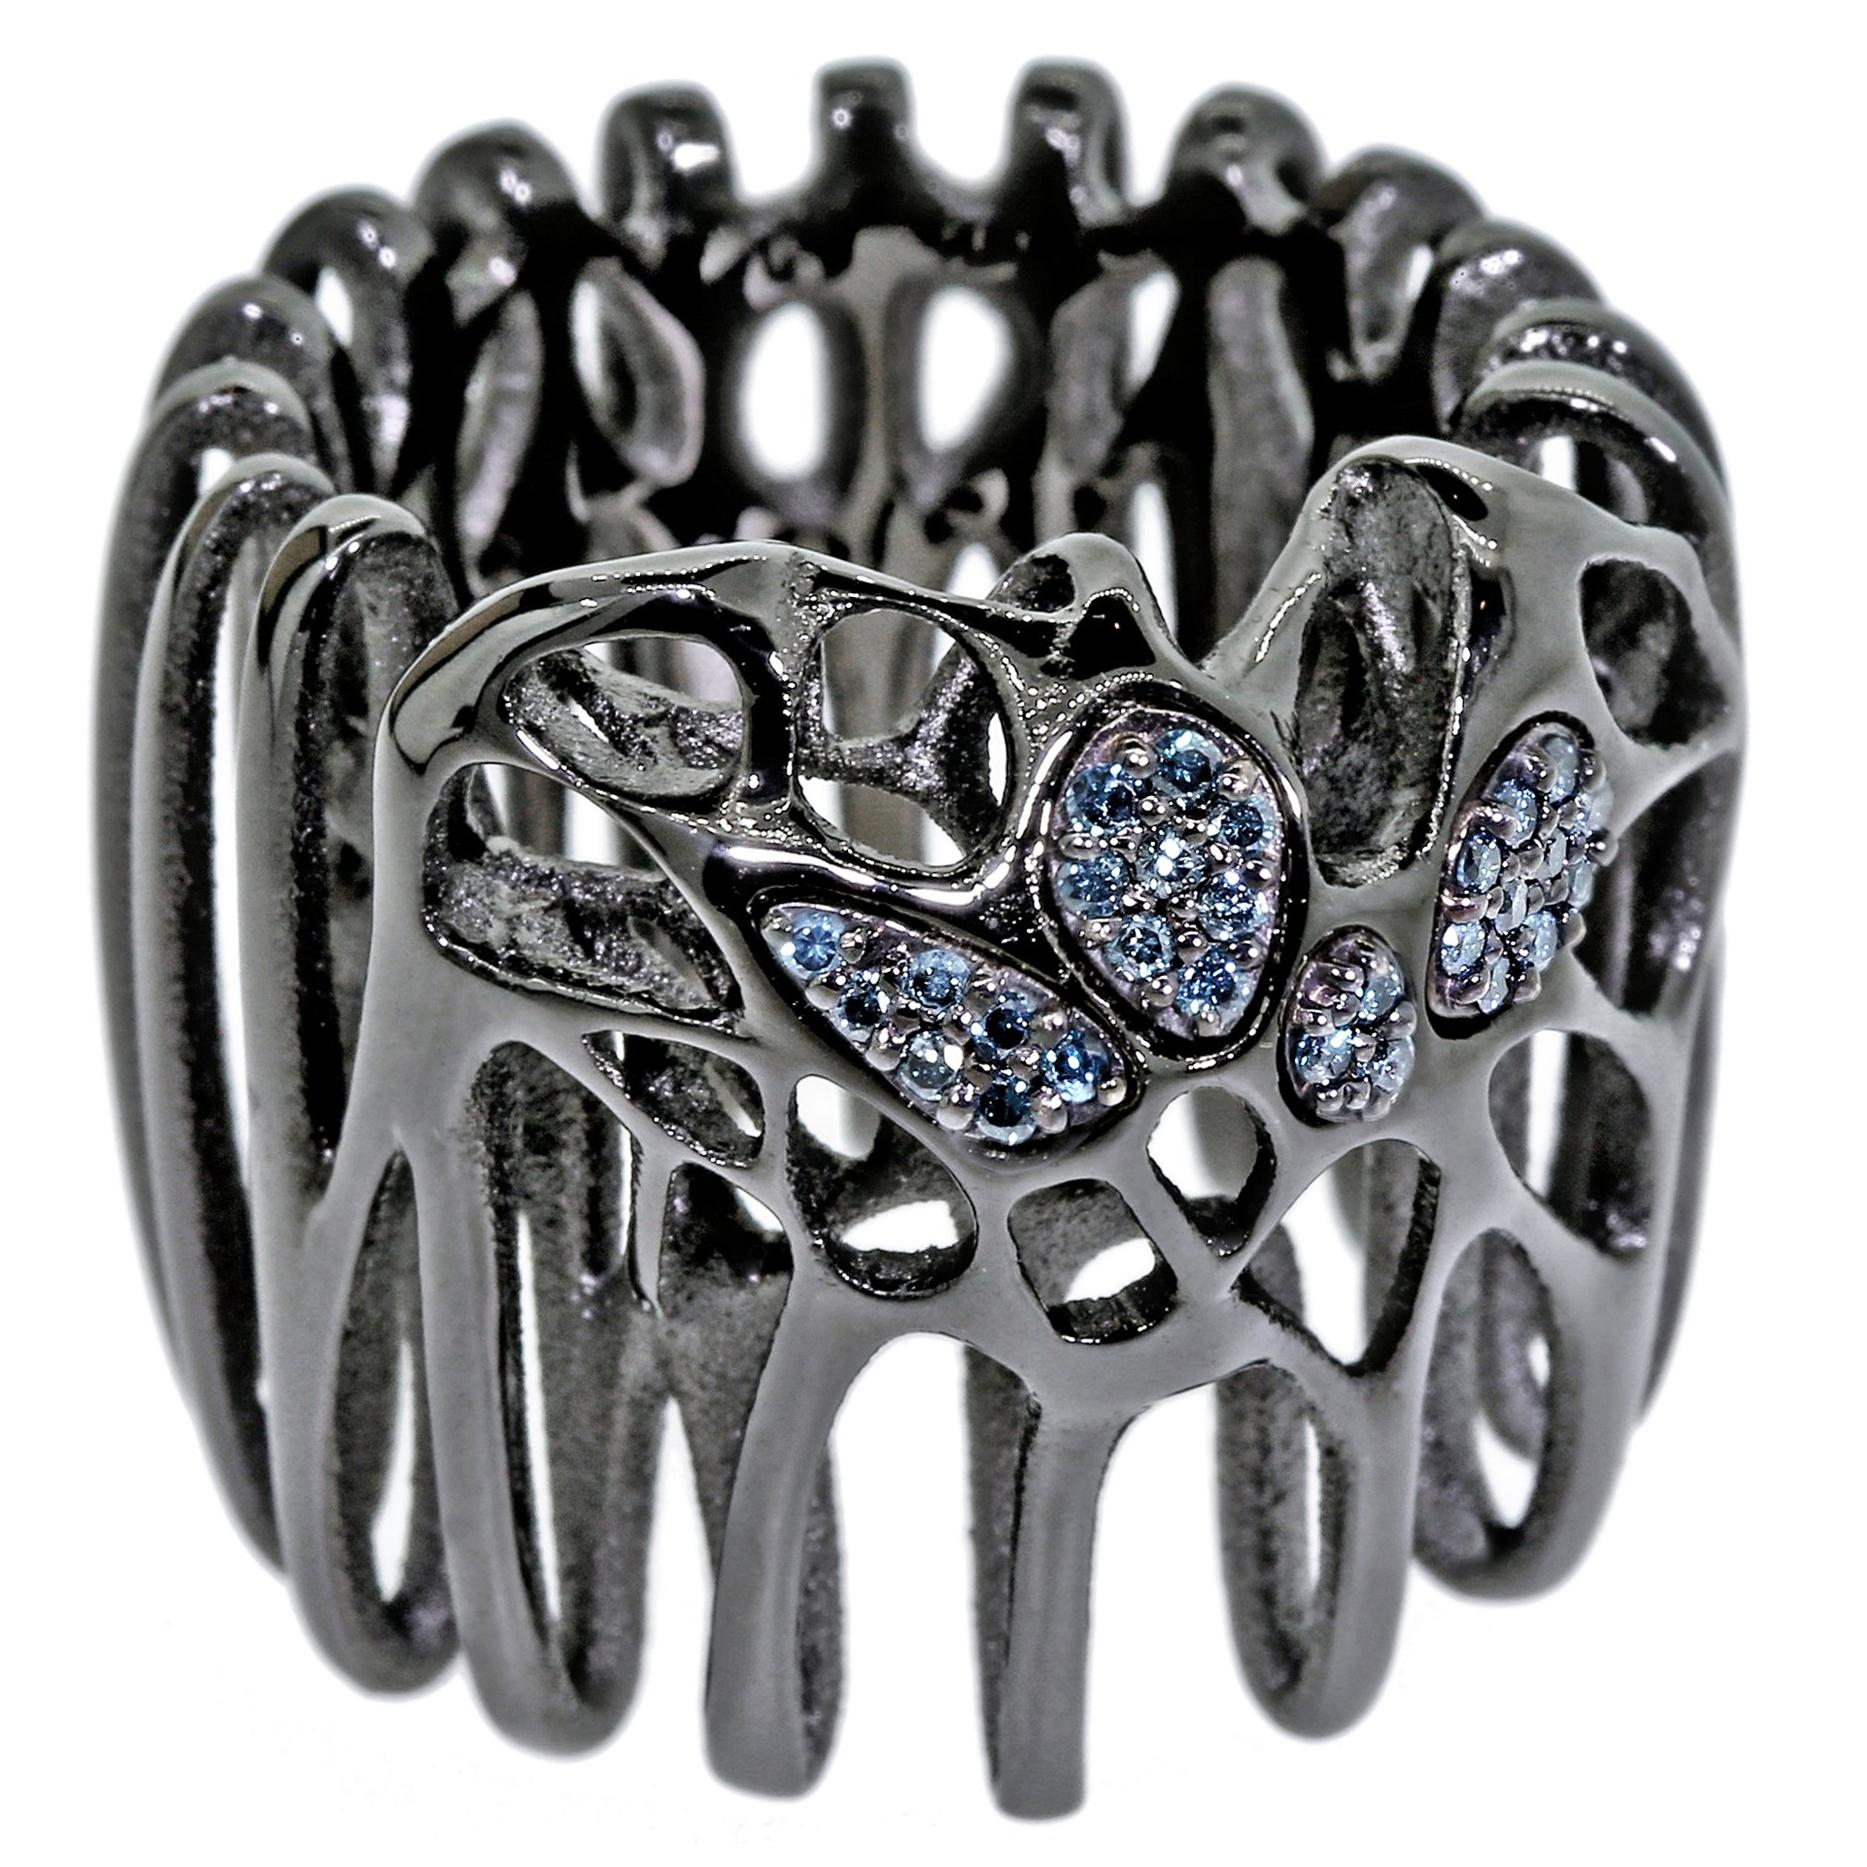 FLOWEN Sterling Silver Moxi Cocktail Ring in Black Ruthenium with Blue Diamonds